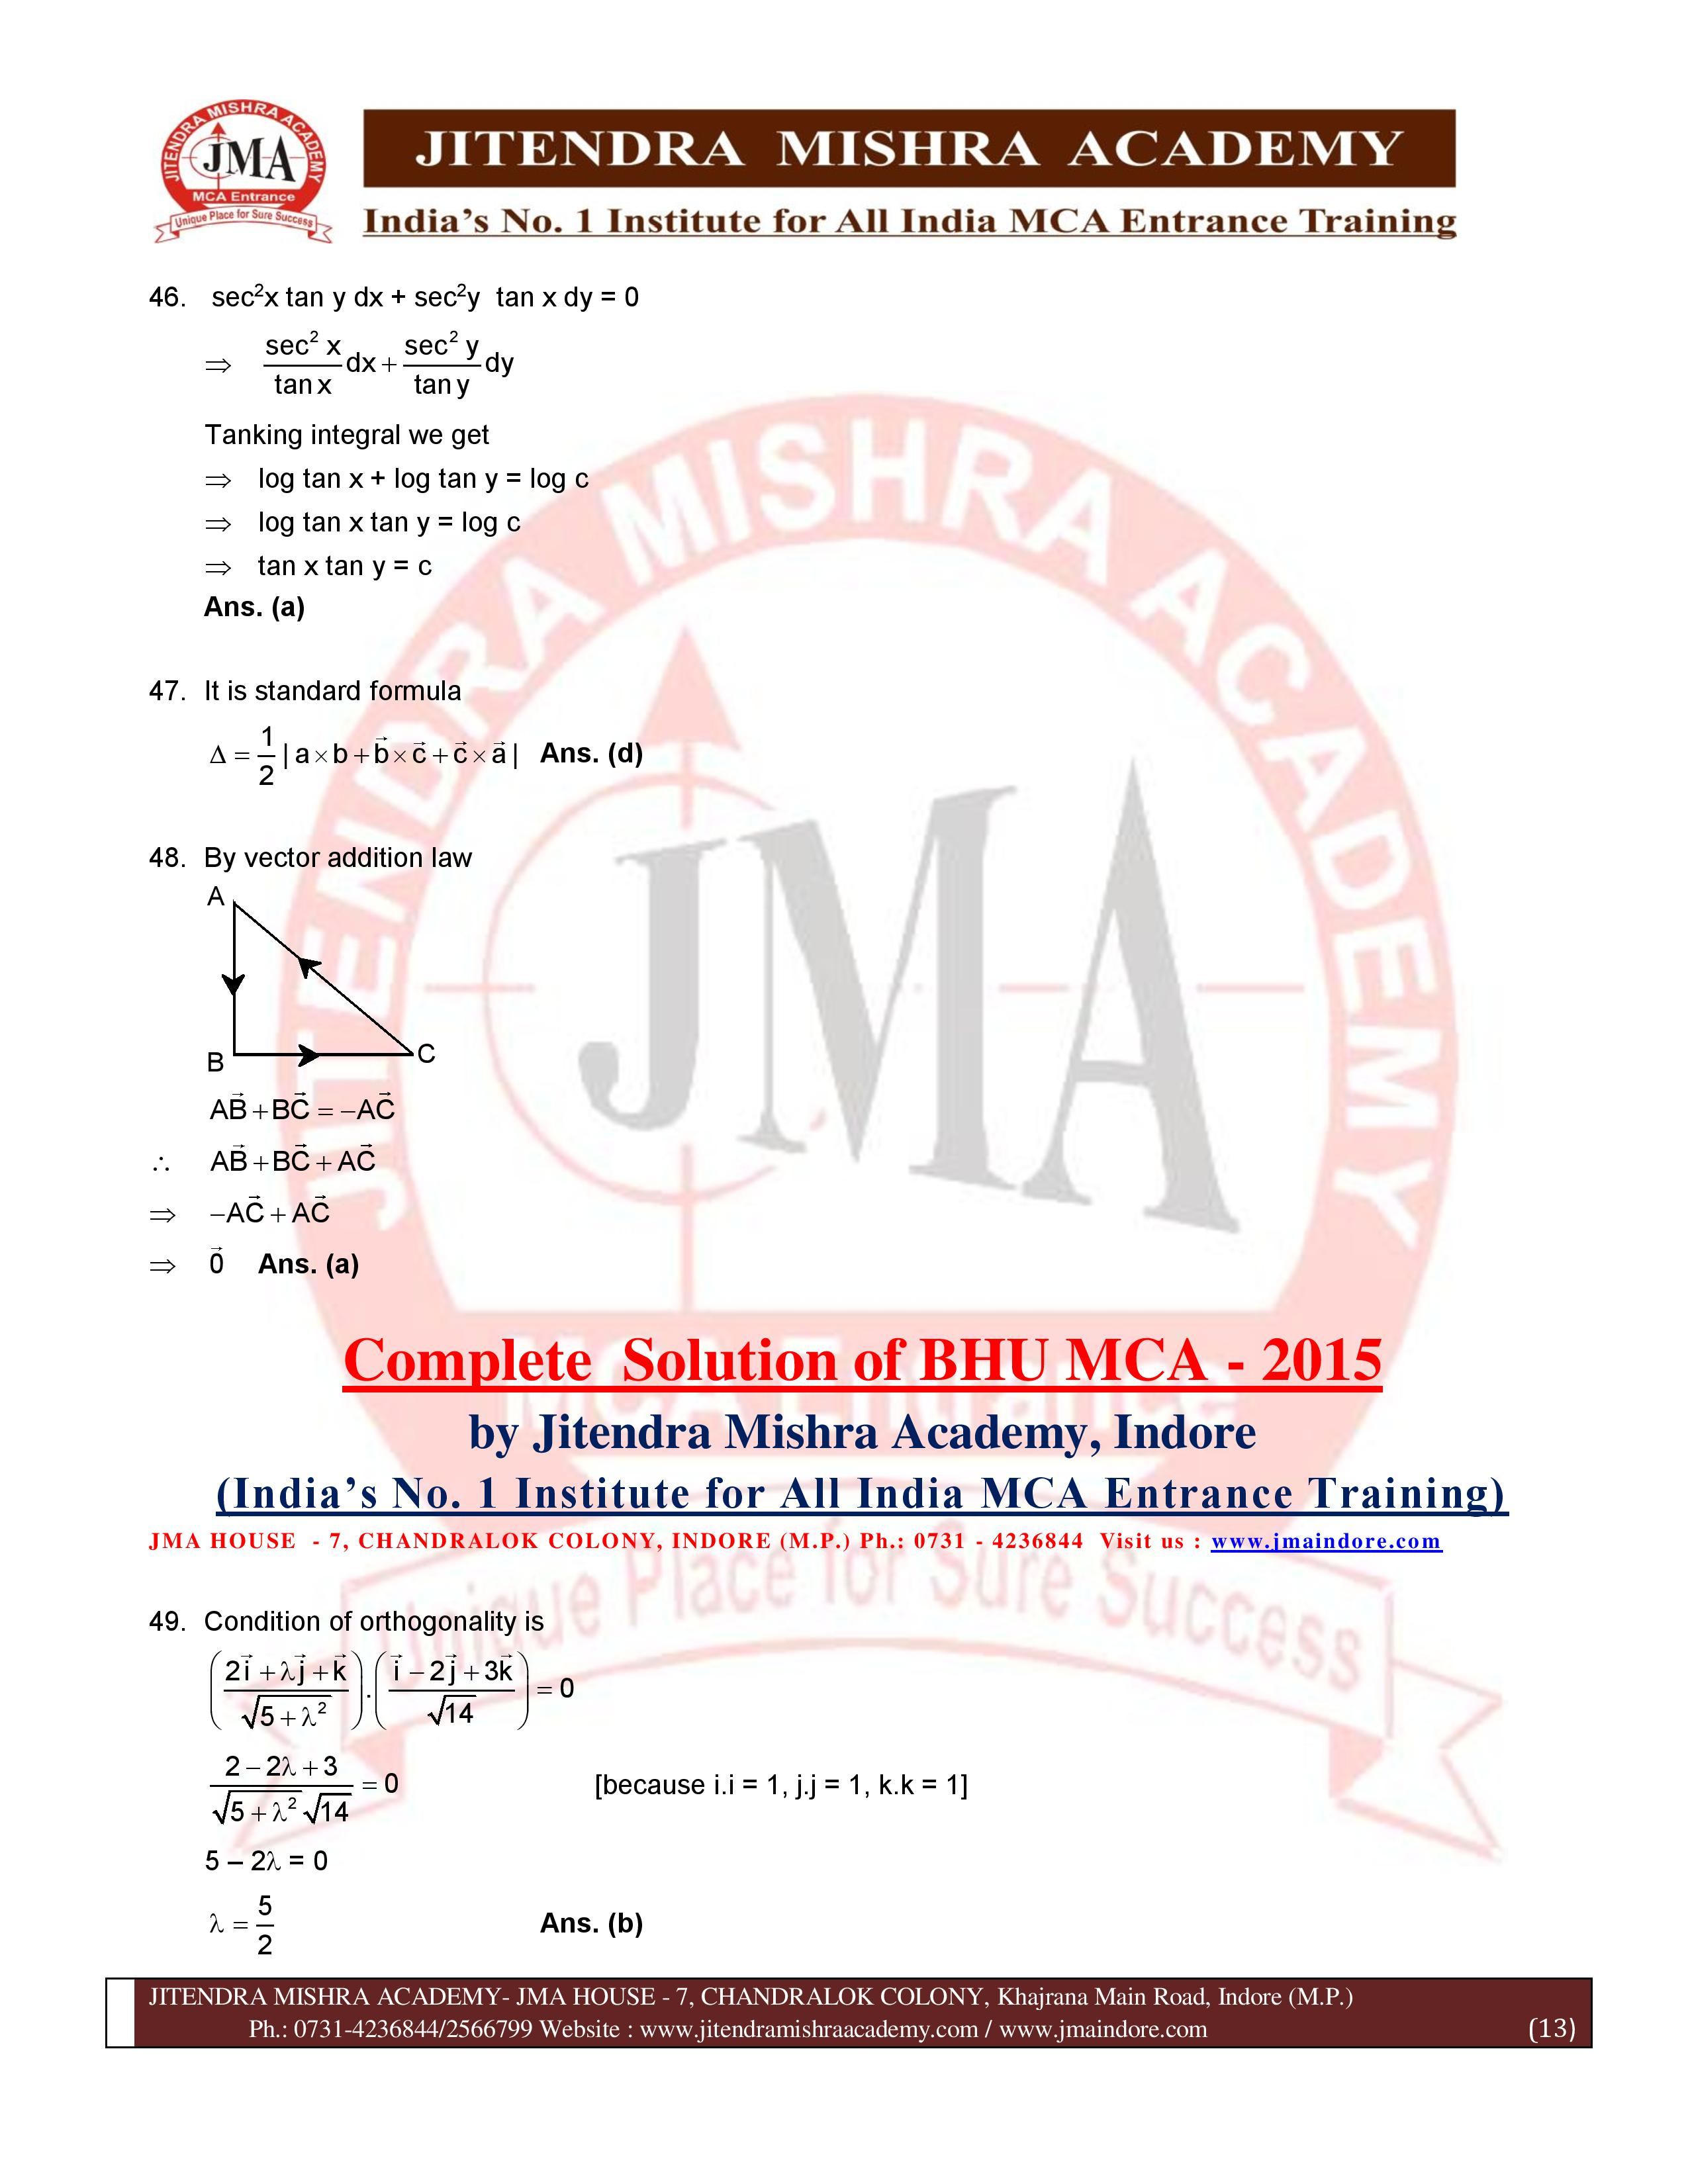 BHU 2015 SOLUTION (SET - 1) (29.06.16)-page-013